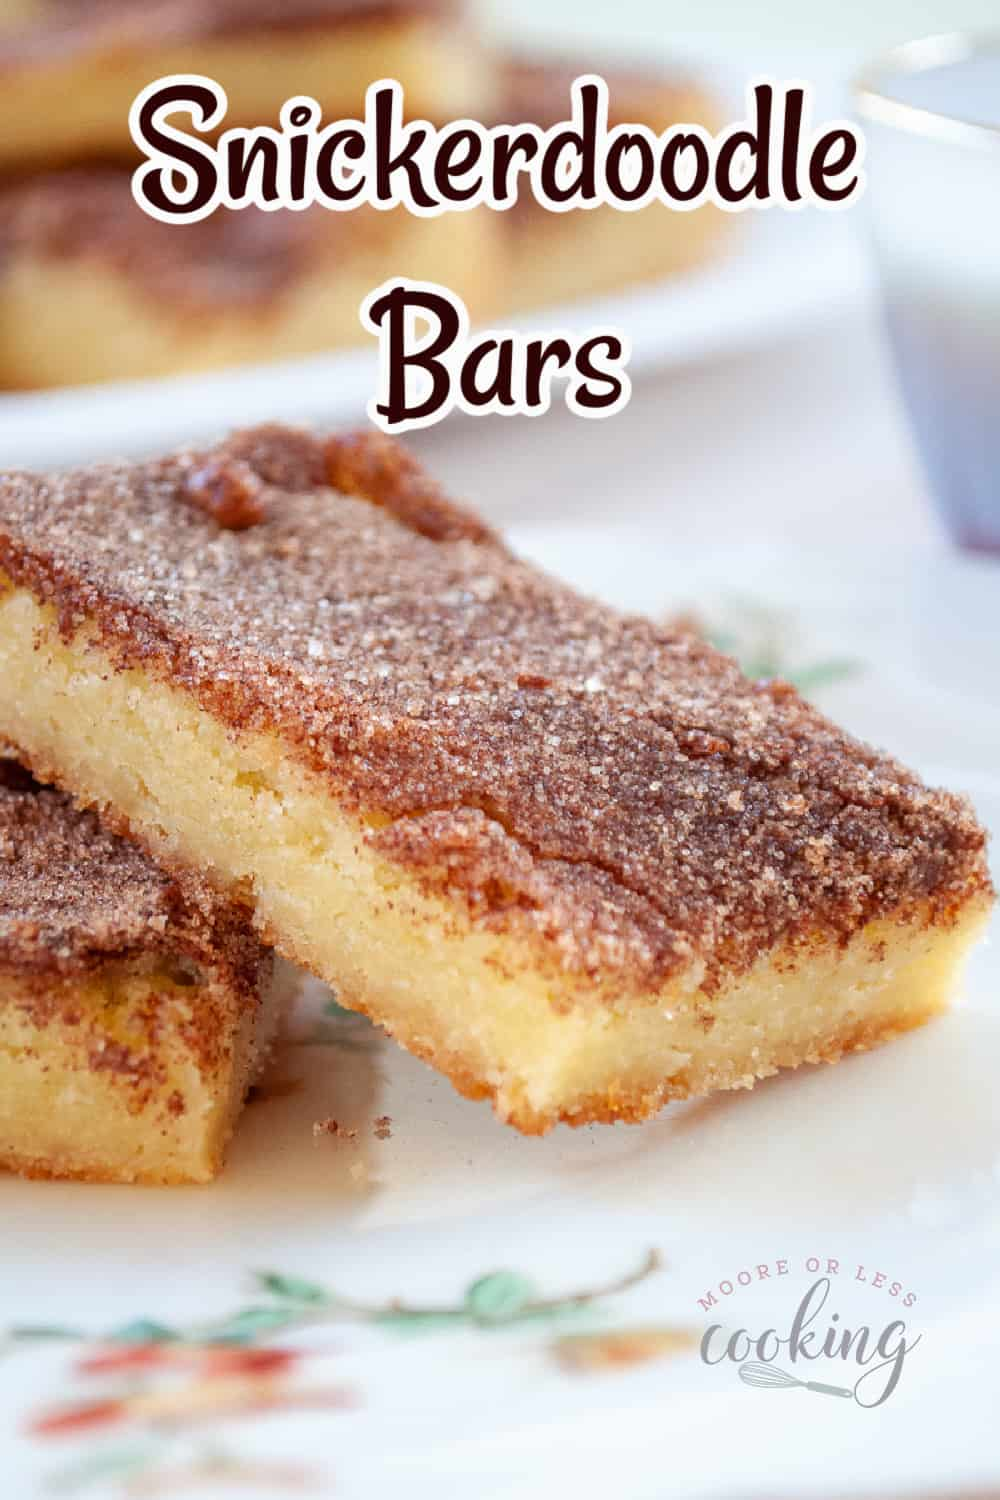 Snickerdoodle Bars. If you love snickerdoodle cookies, you'll adore these easy to make snickerdoodle bars. They have that classic cinnamon and sugar flavor but in a blondie bar form, that's buttery, soft, and chewy. via @Mooreorlesscook